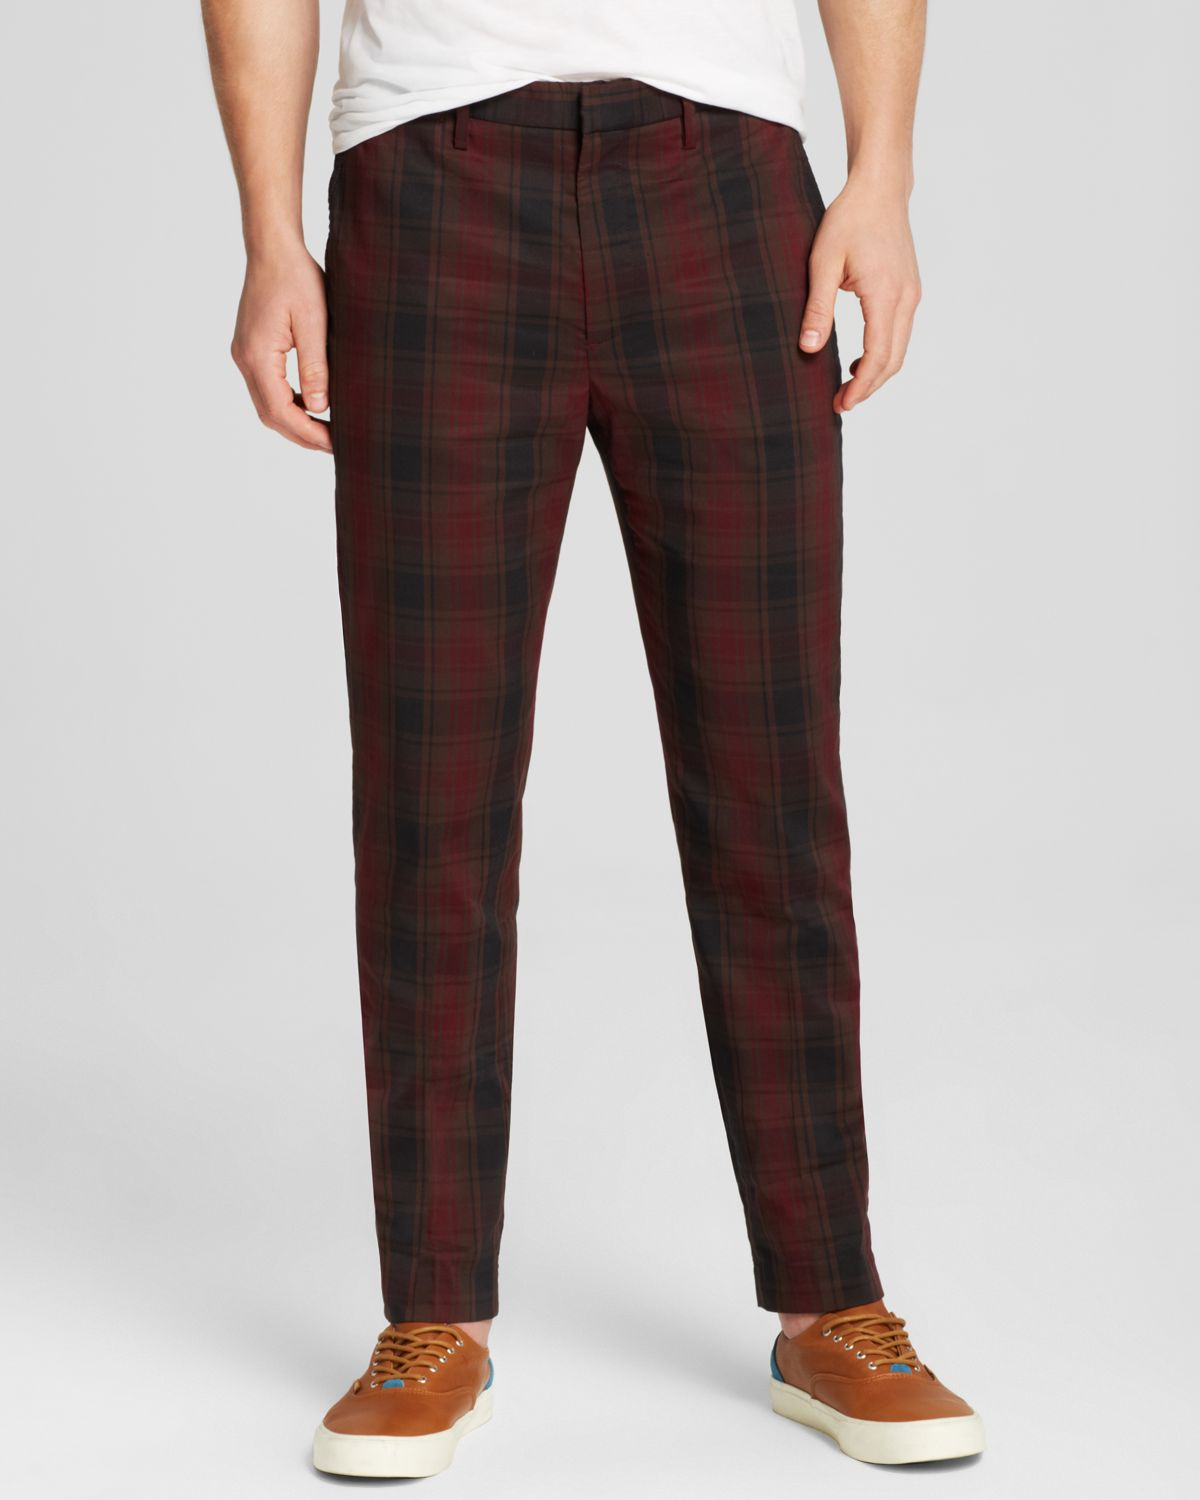 Slim-fit plaid pant with flat front featuring rigid waistband and off Mens Plaid 3 Pieces Suit Slim Fit Notch Lapel One Button Party Tux Jacket Vest Trousers Set. by Simcat. $ - $ $ 84 $ 89 99 Prime. FREE Shipping on eligible orders. Some sizes/colors are Prime eligible.